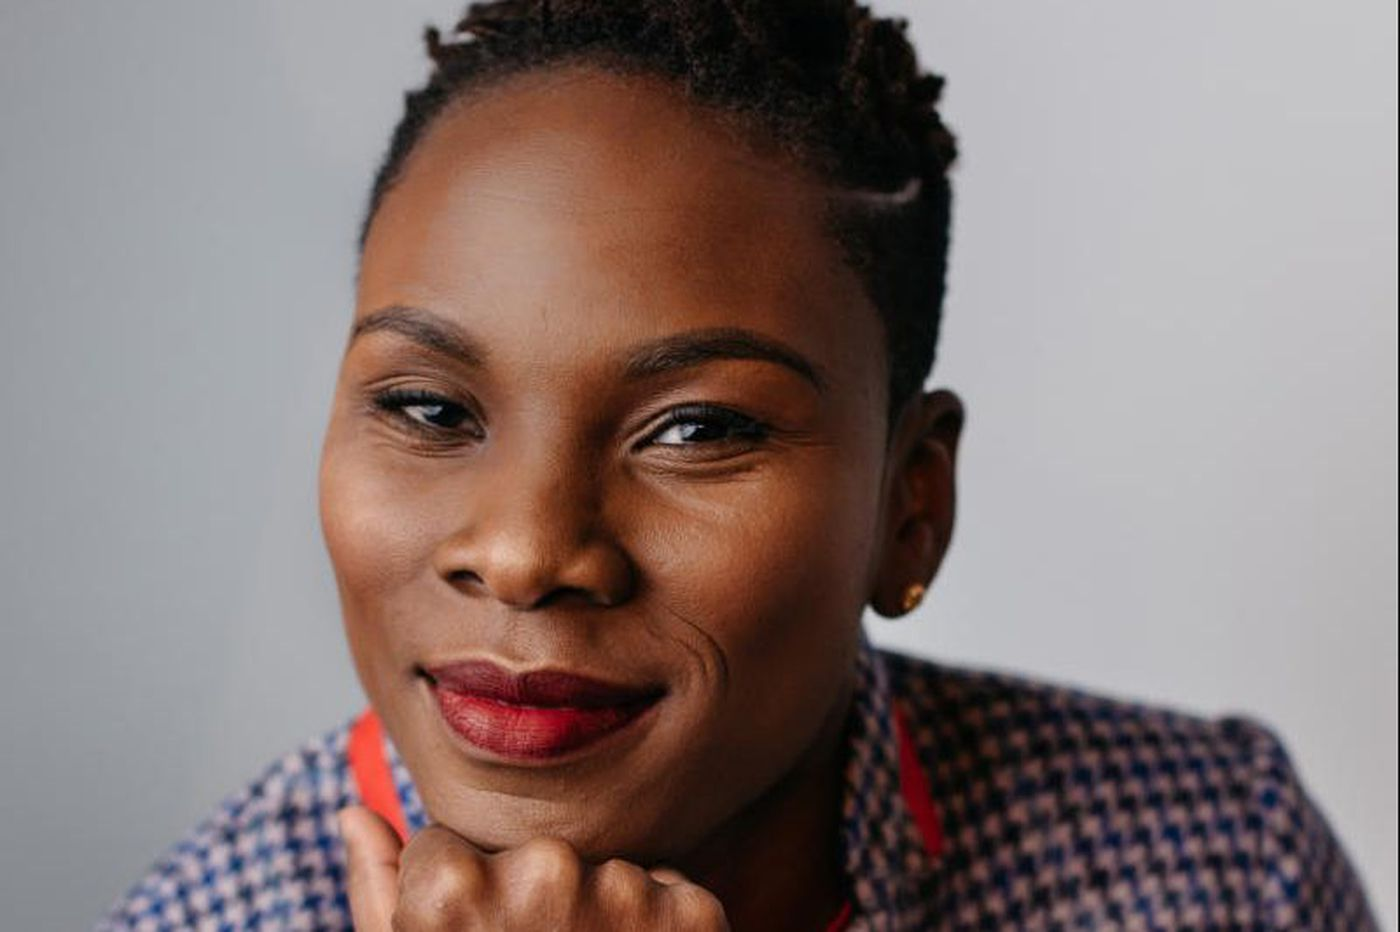 Getting down with writer Luvvie Ajayi, in Philly for women storytelling performance Together Live | Elizabeth Wellington